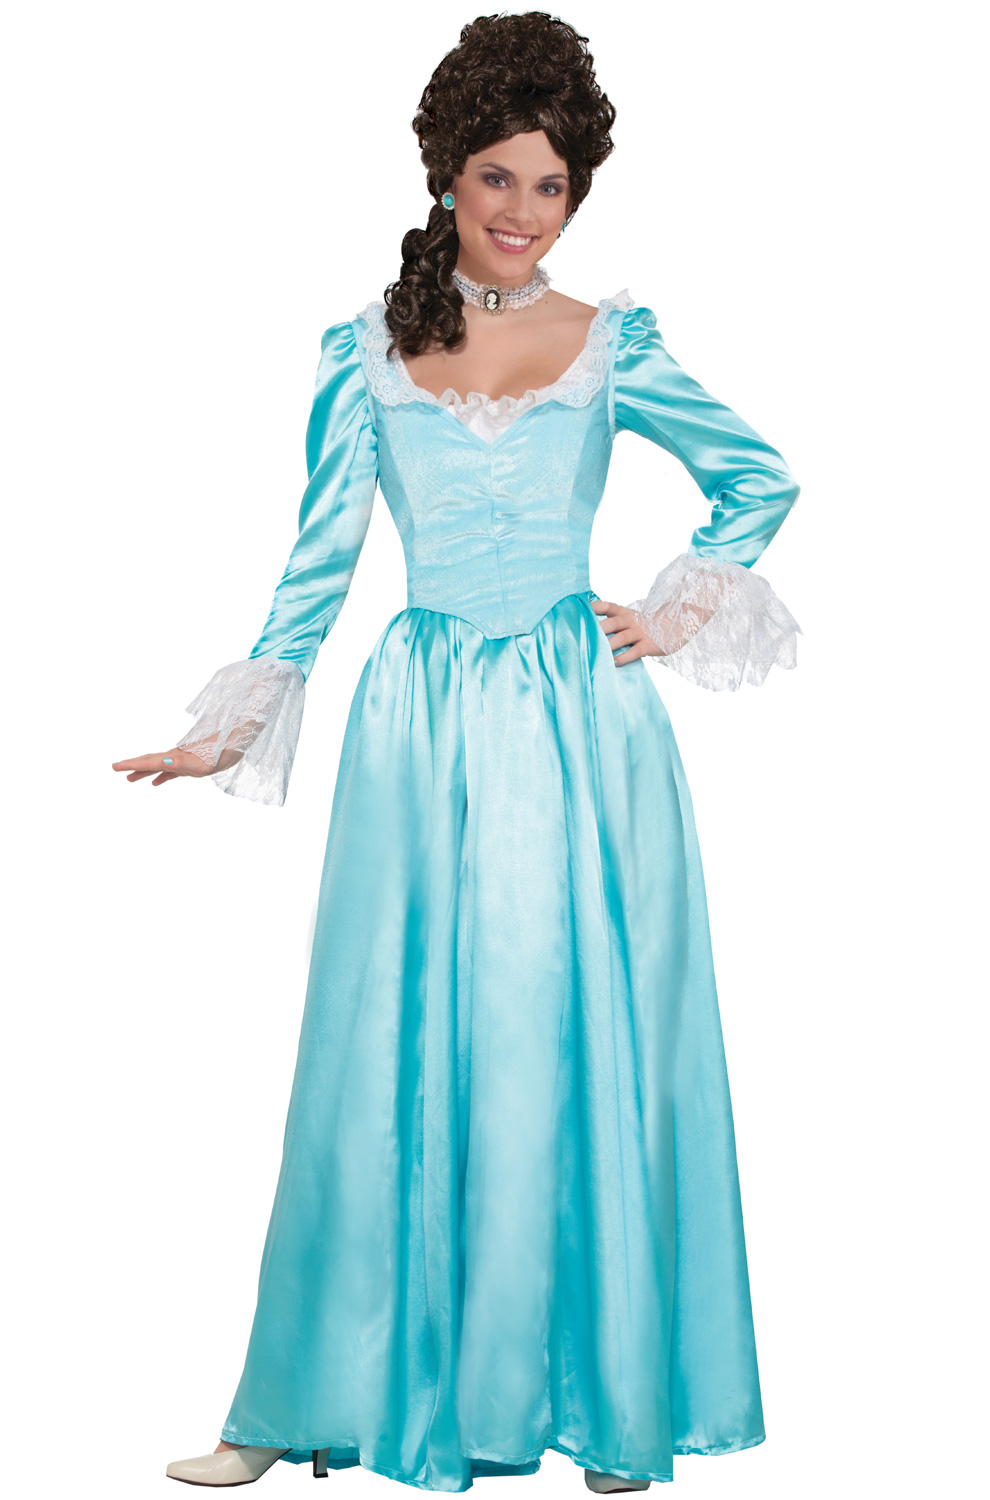 Blue Colonial Lady Adult Costume (Medium)  sc 1 st  Pure Costumes & Famous People Costumes - Celebrity DIY Dress-Up Ideas - PureCostumes.com